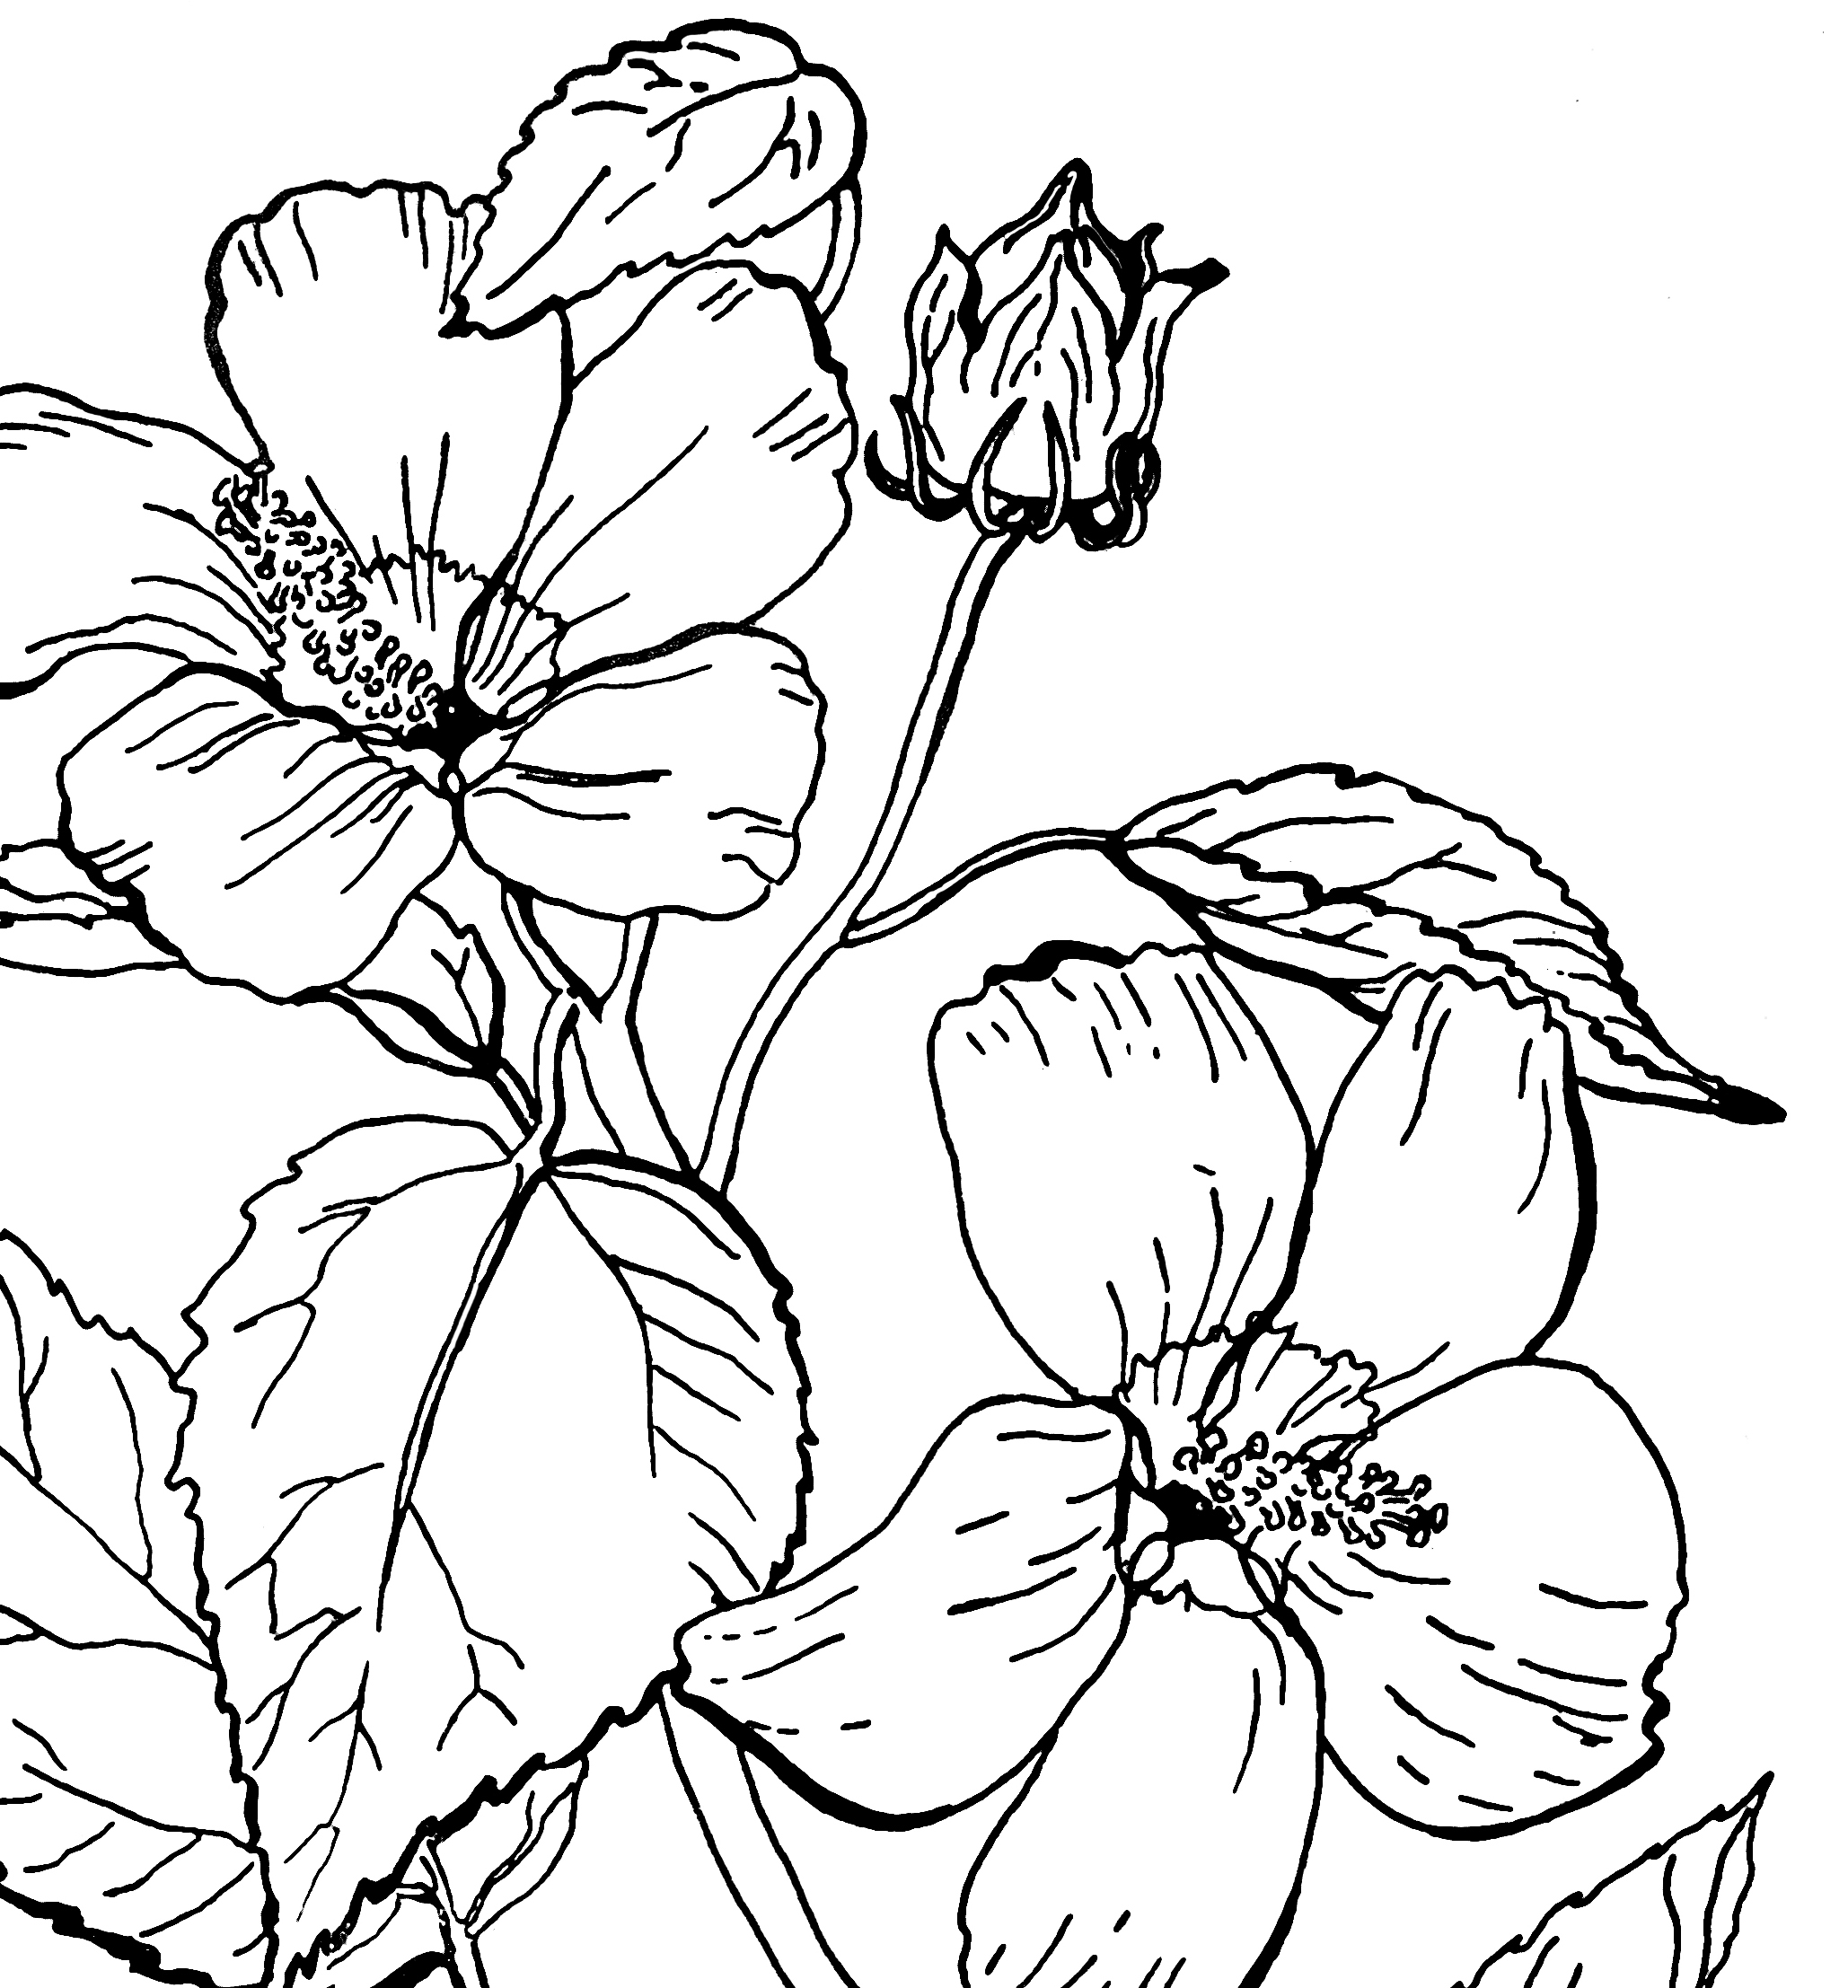 picture of a rose to color free printable roses coloring pages for kids of color a rose to picture